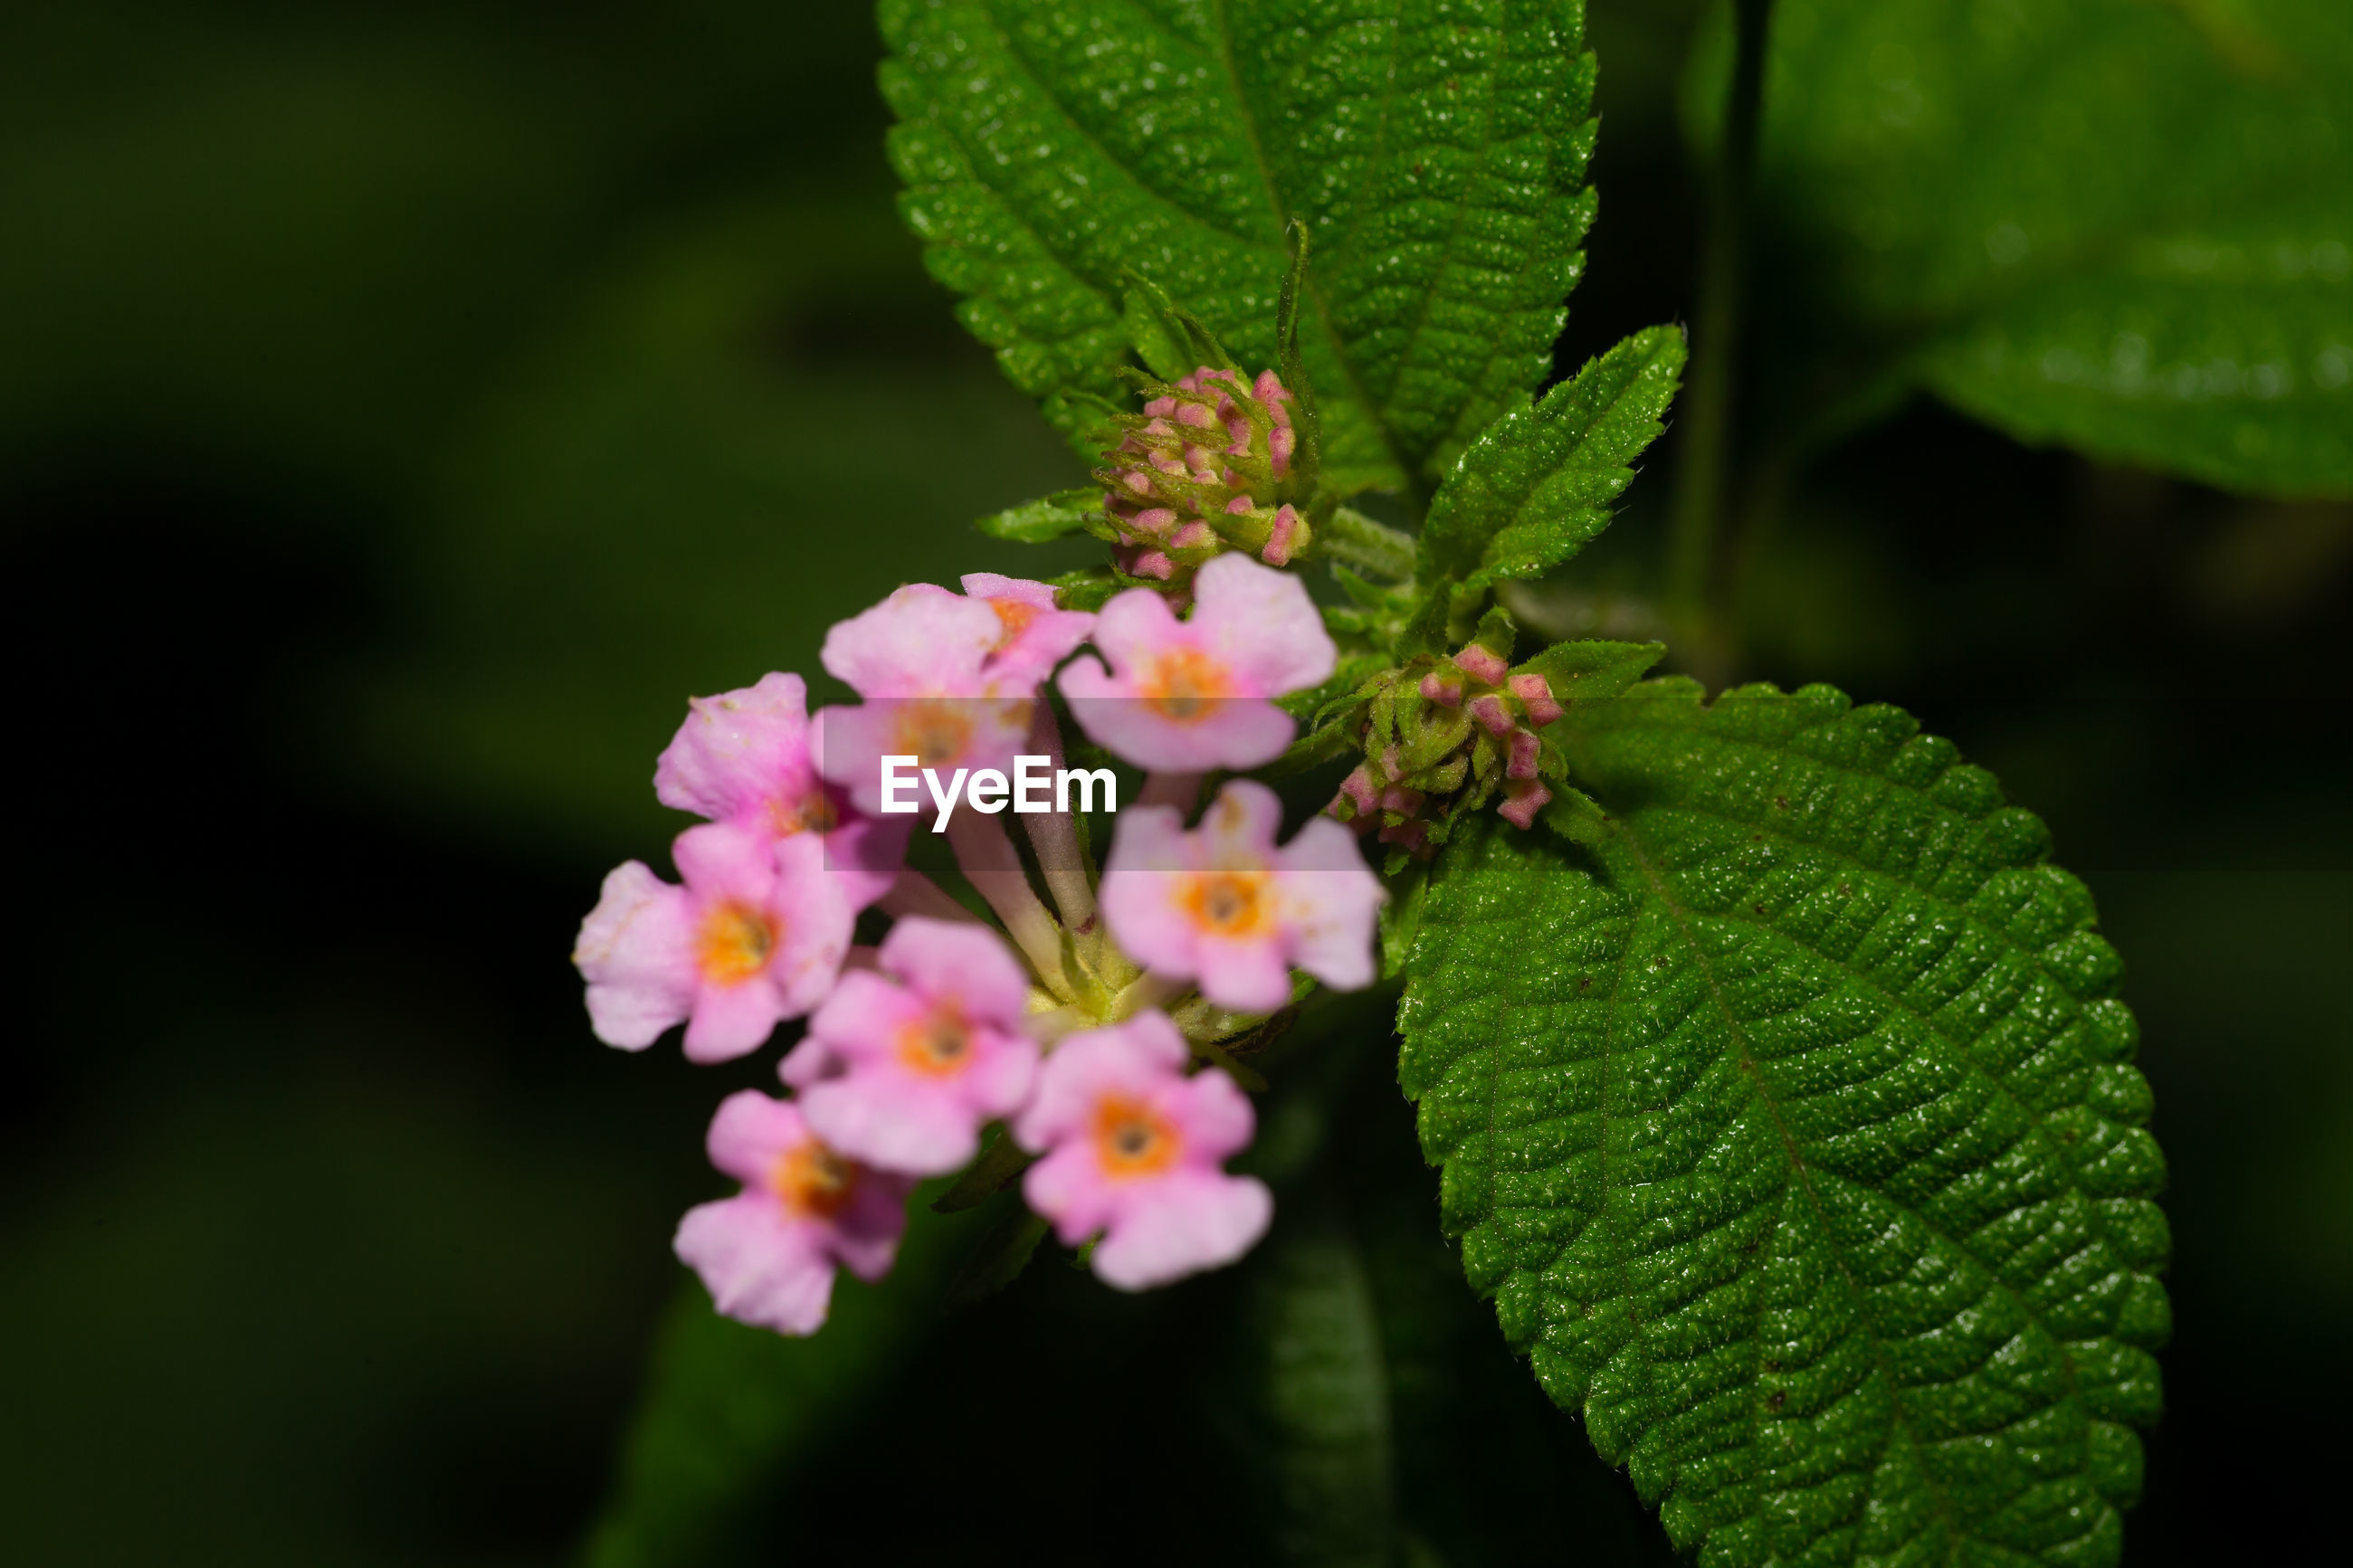 plant, flower, flowering plant, nature, plant part, leaf, macro photography, freshness, beauty in nature, close-up, green, lantana camara, blossom, fragility, pink, growth, no people, outdoors, wildflower, petal, flower head, shrub, botany, day, springtime, focus on foreground, inflorescence, animal wildlife, tree